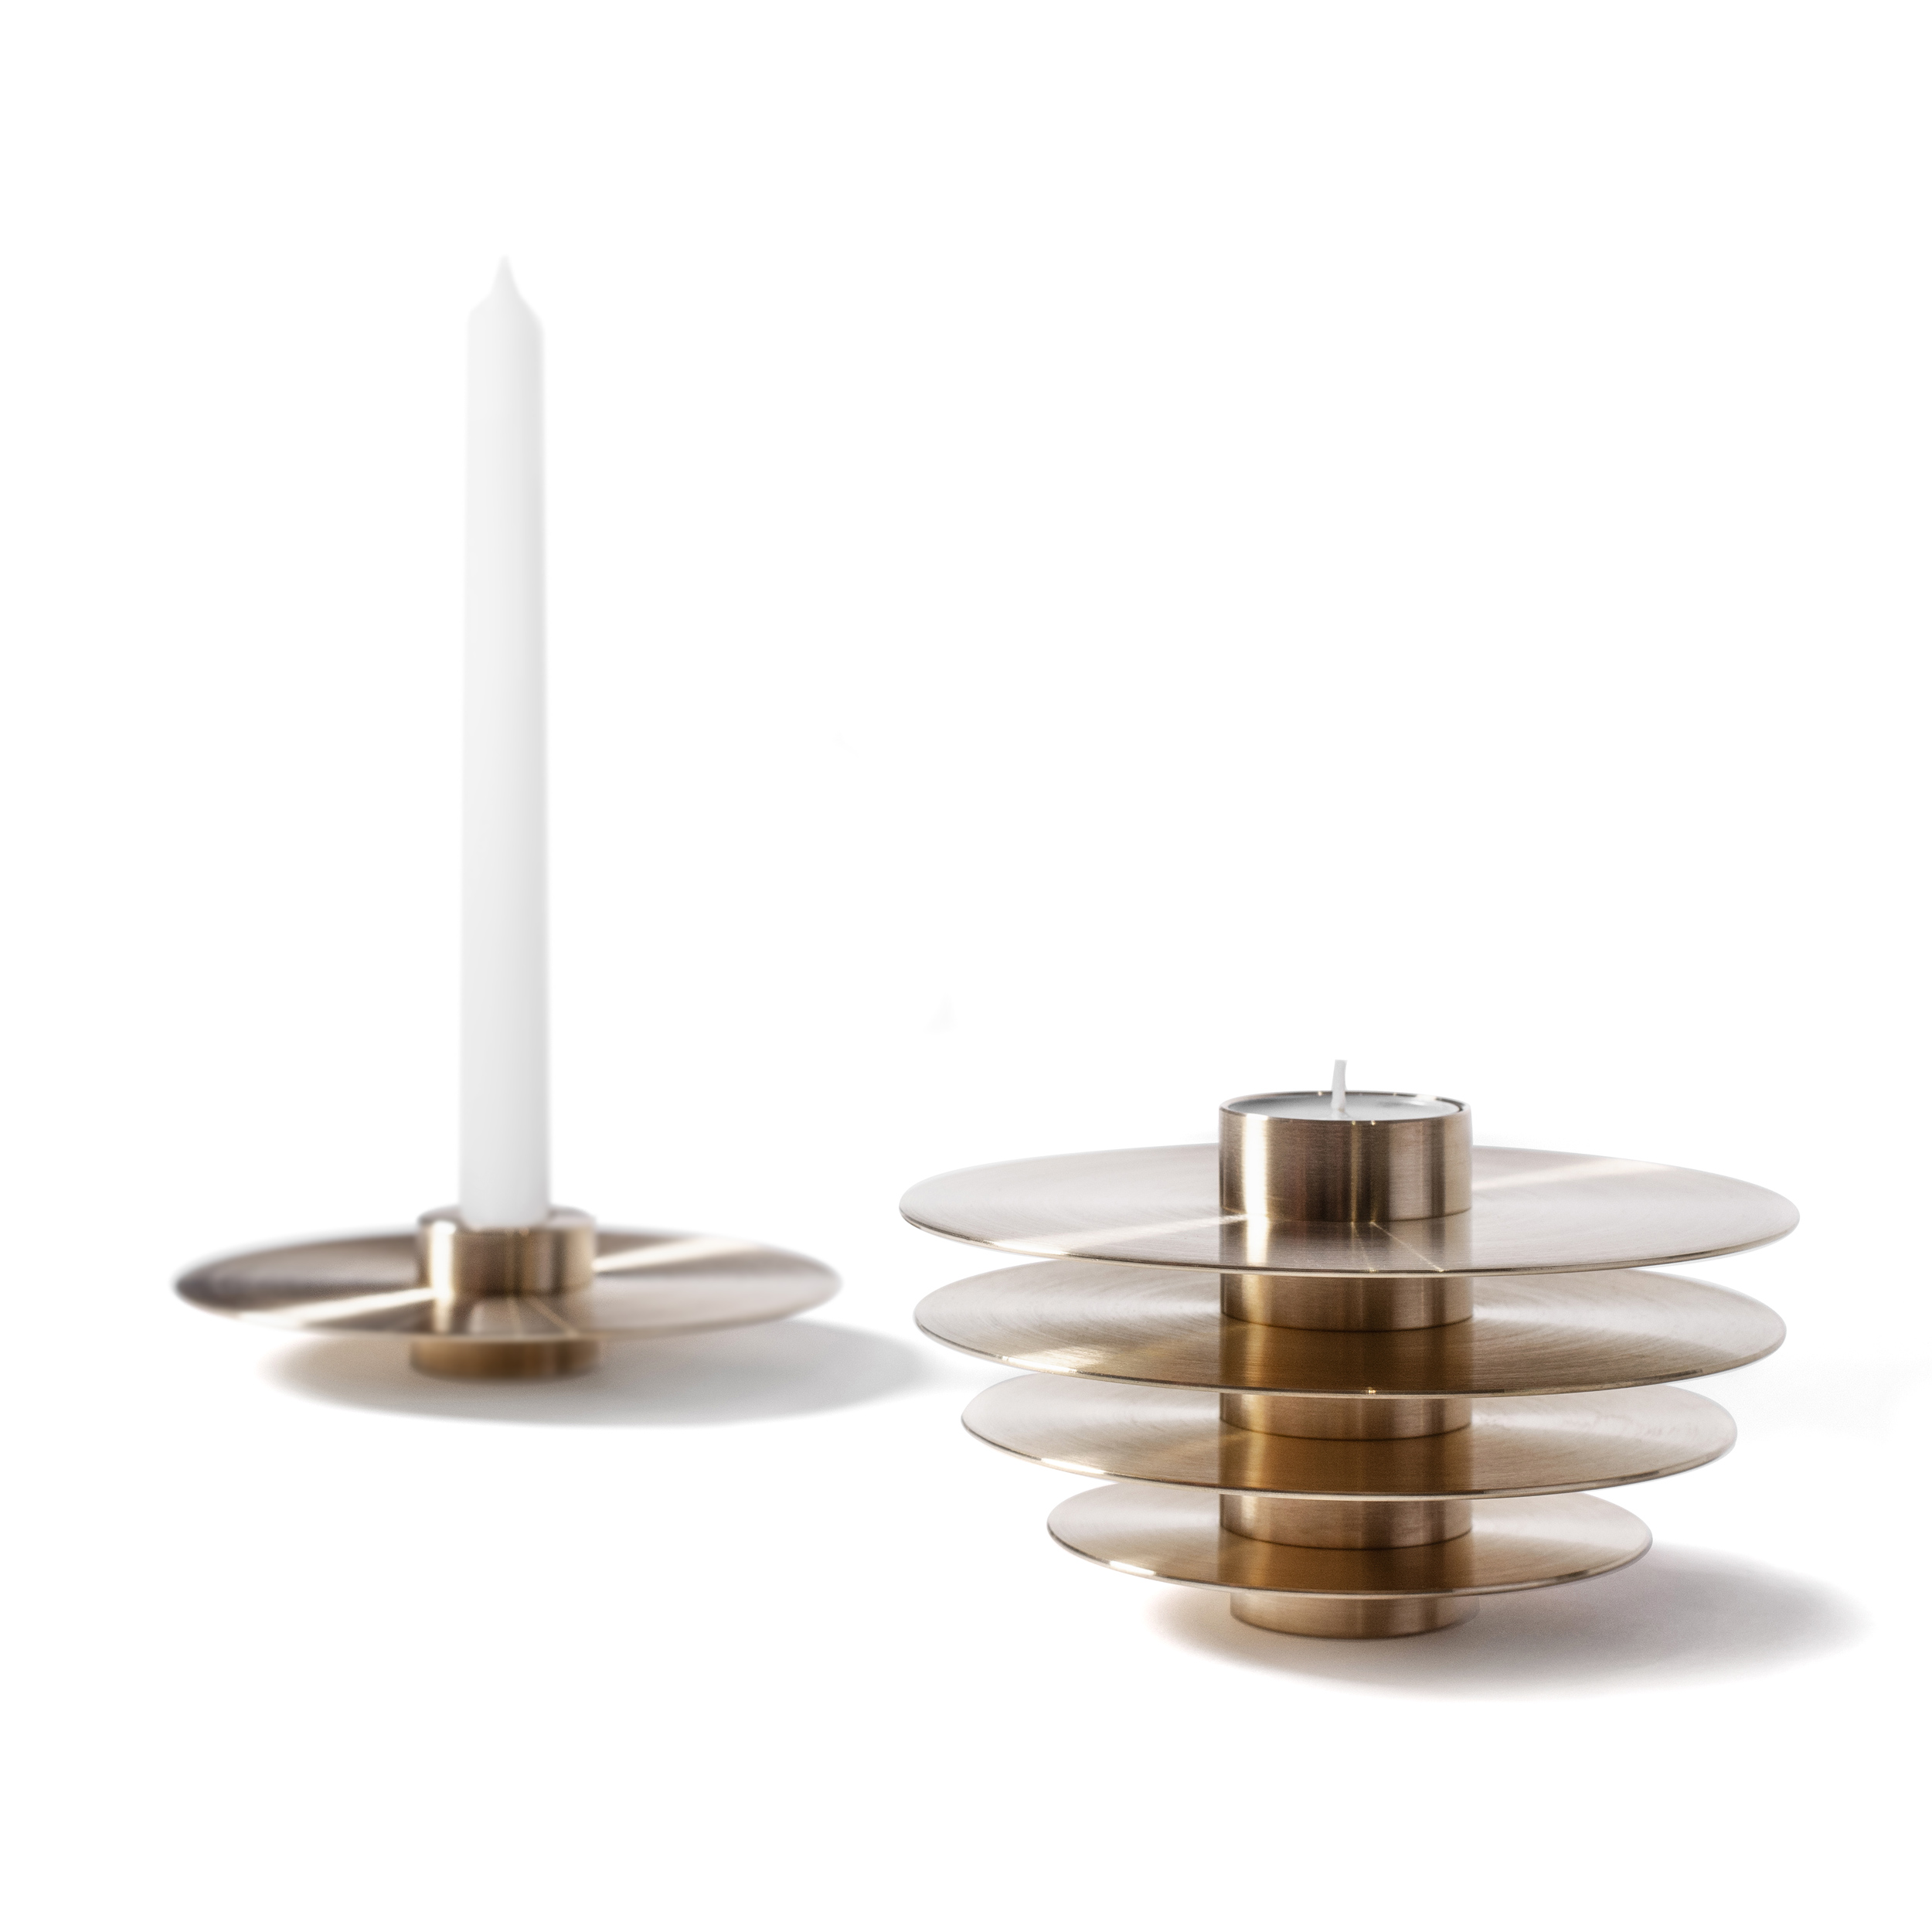 Modern ORB Candle Holders Set CS1 Brass - ORB is a set of seven metal candle holders stacked on top of one another to form a modern spherical sculpture. Designed to be functional, each candle holder has two sides to hold long and tealight candles. The collection comes in solid brass and stainless steel making it look charming in any interior setting as a series of seven candle holders or as a single sculpture.